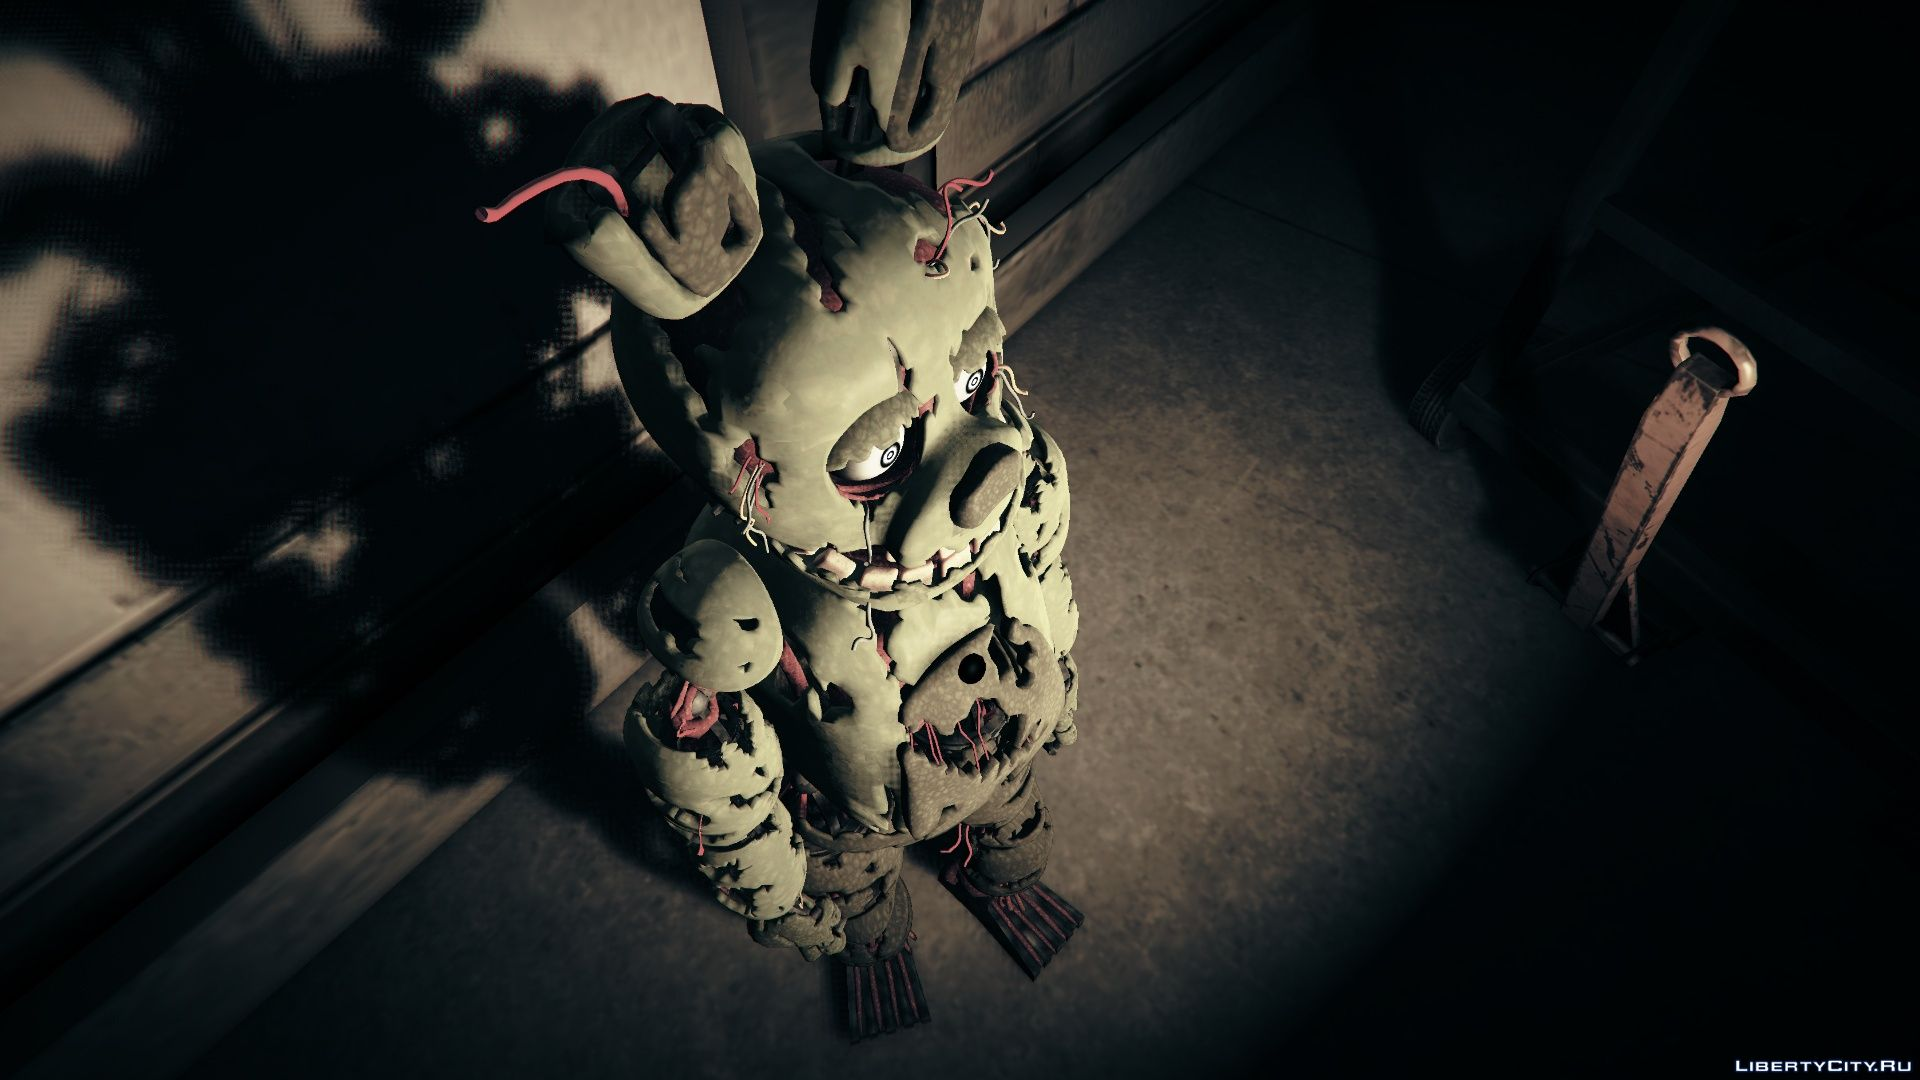 Fnaf 3 Springtrap 1 0 A Springtrap From Five Nights At Freddy S